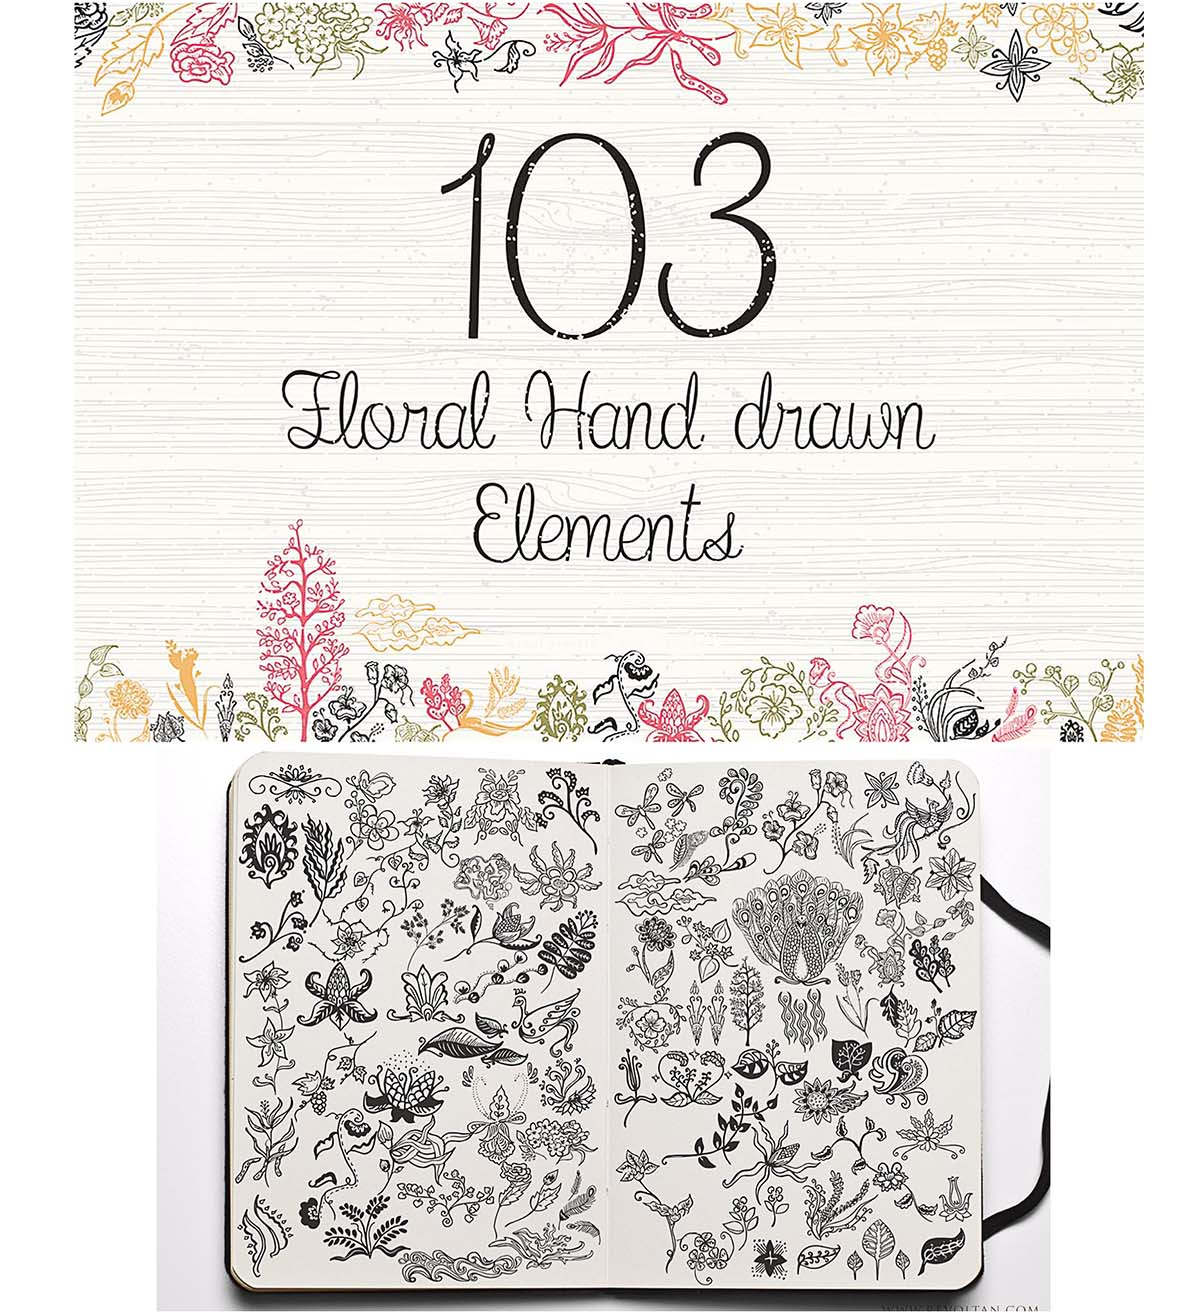 Floral hand drawnl elements and swirls